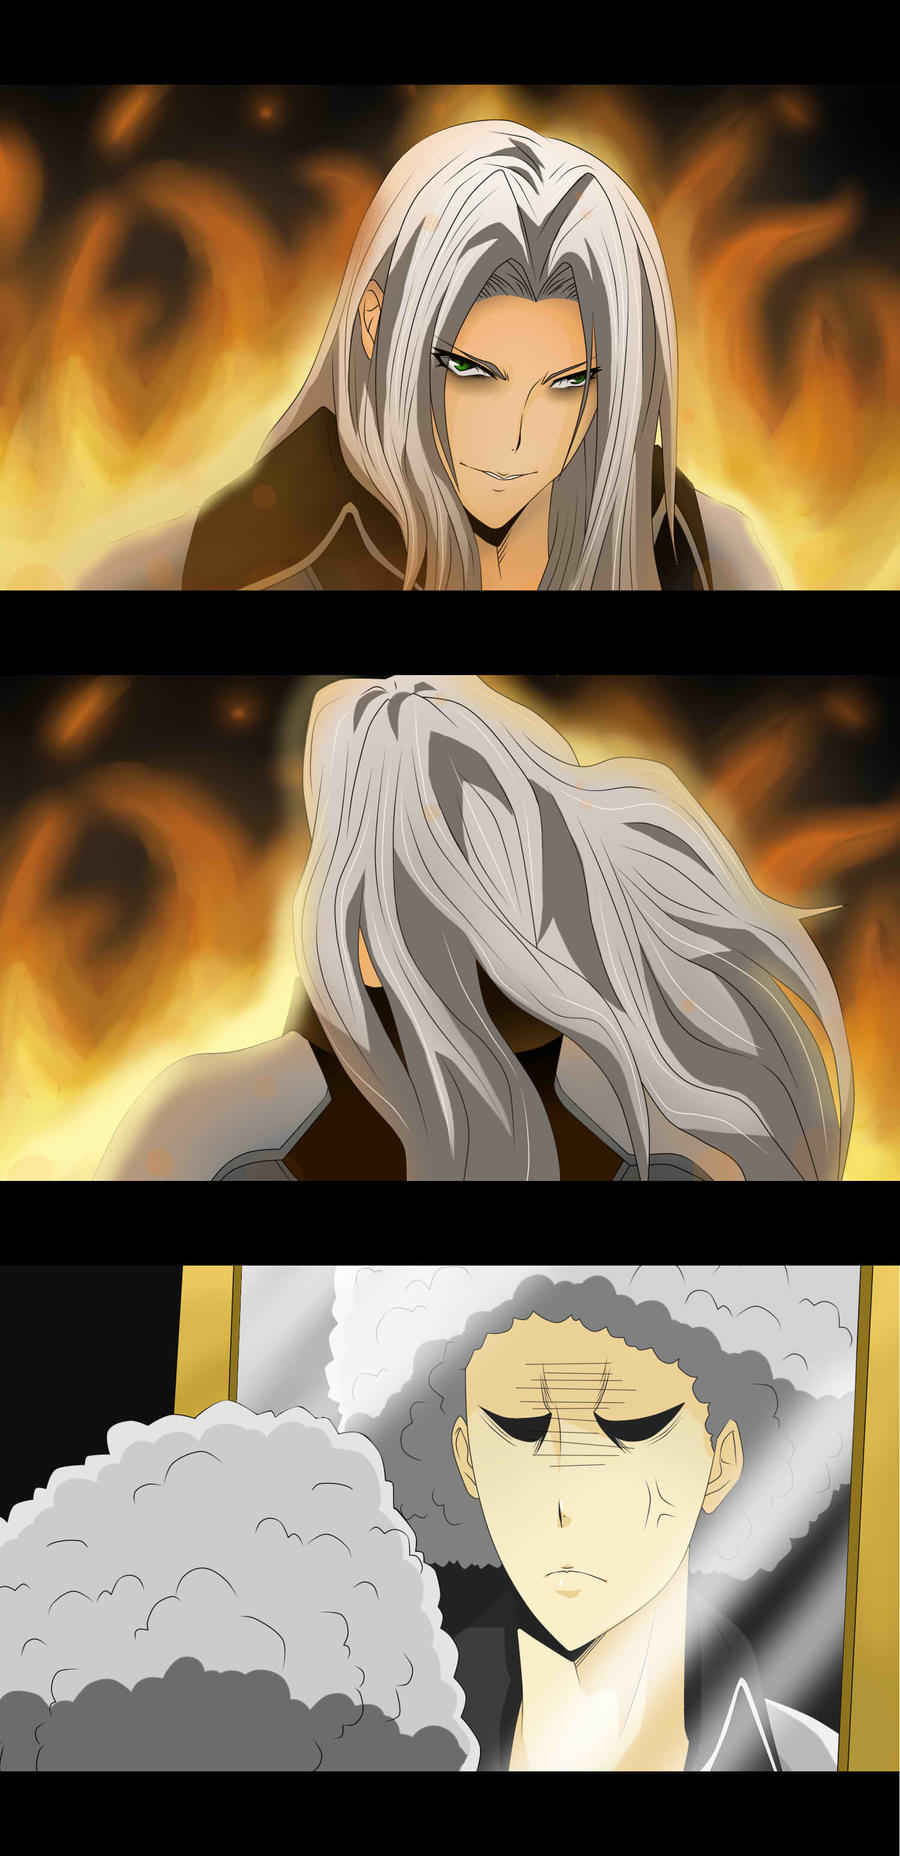 Sephiroth's Bad Hair Day